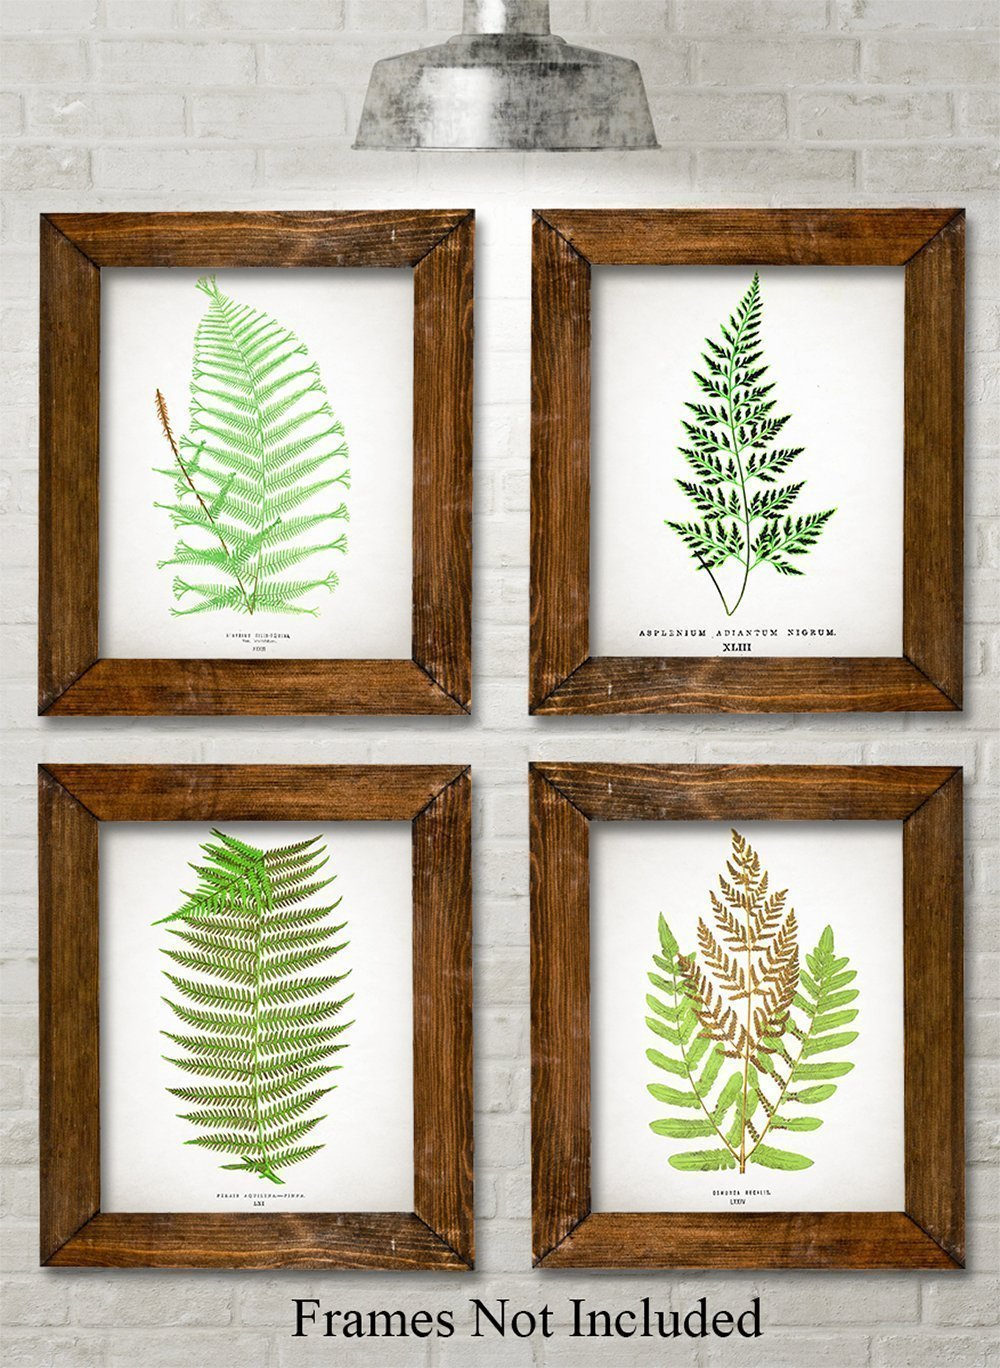 Antique Fern Botanical Prints - Set of Four Photos (8x10) Unframed by Personalized Signs by Lone Star Art